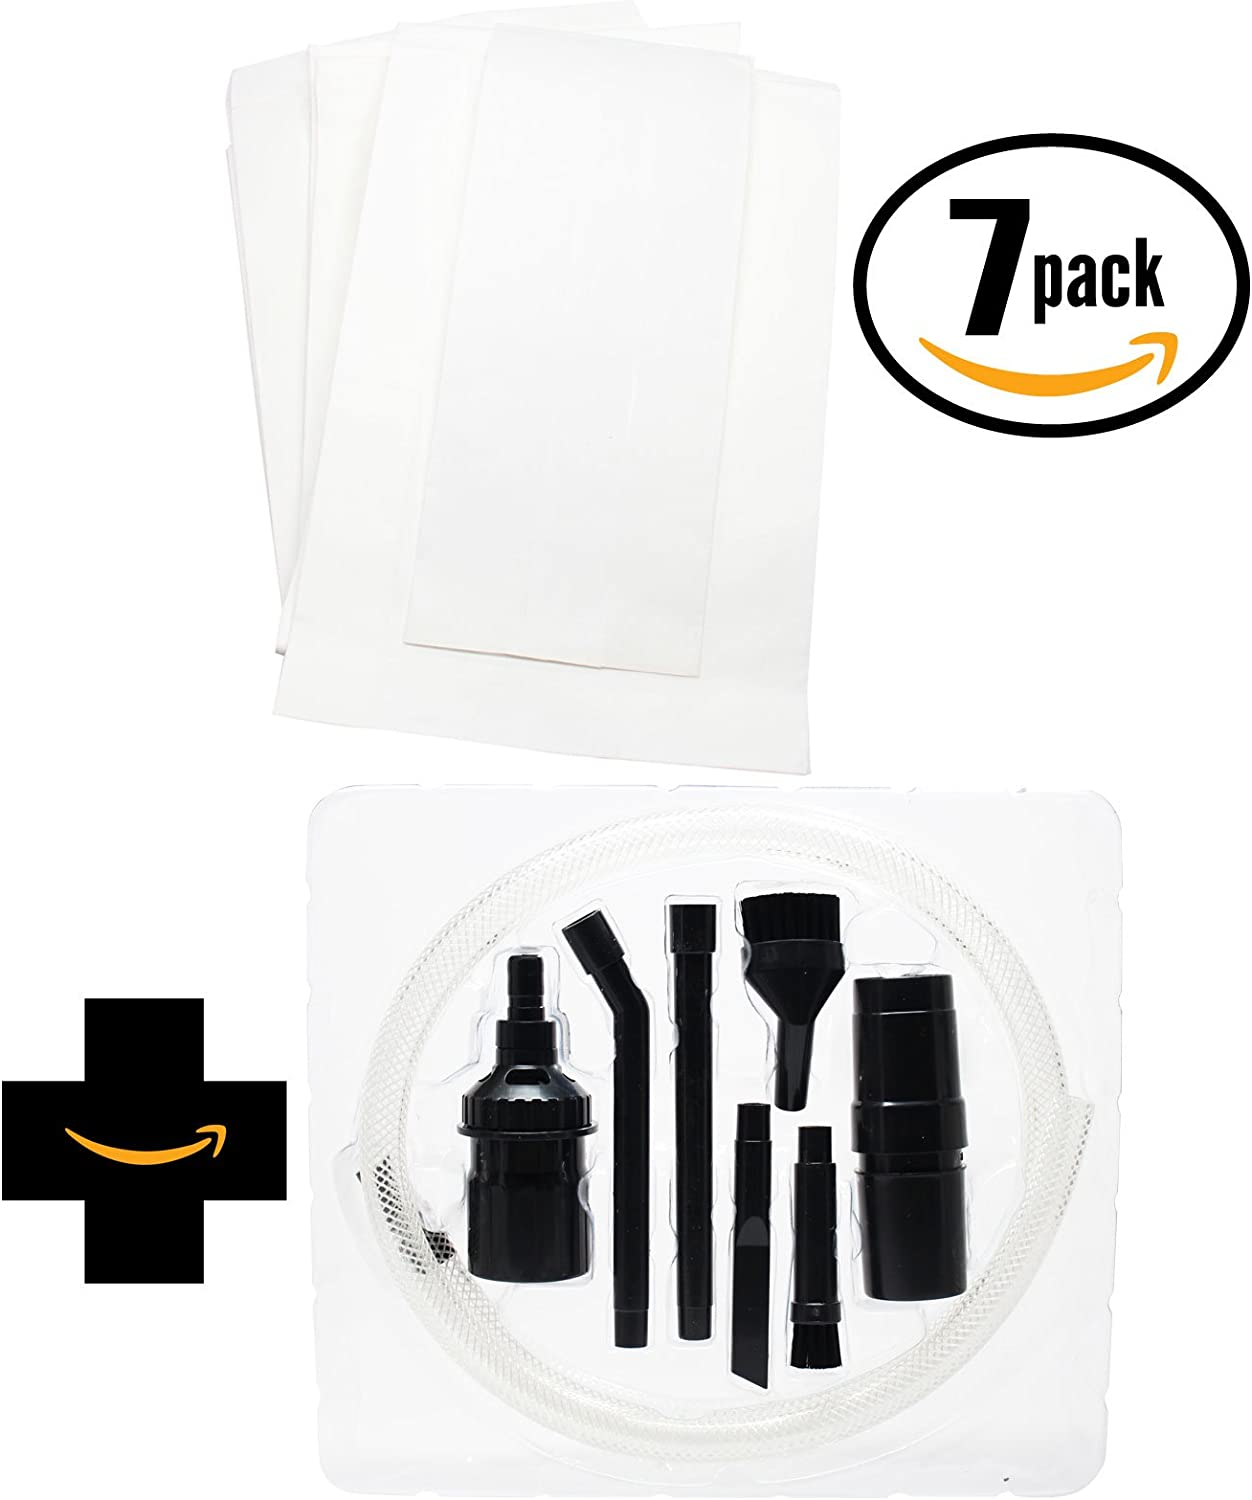 21 Replacement F & G Vacuum Bags 52320C with 1 Micro Vacuum Attachment Kit for Eureka, Sanitaire, Singer, Sears, Kenmore - Compatible with Sanitaire SC684F, Eureka F & G, Eureka 1400 Series, Koblenz U80, Eureka SC684F, Eureka 1950A, Eureka 1934A, Clarke 300, Clarke 400, Kenmore 5062, Kenmore 5002, Eureka 52320C